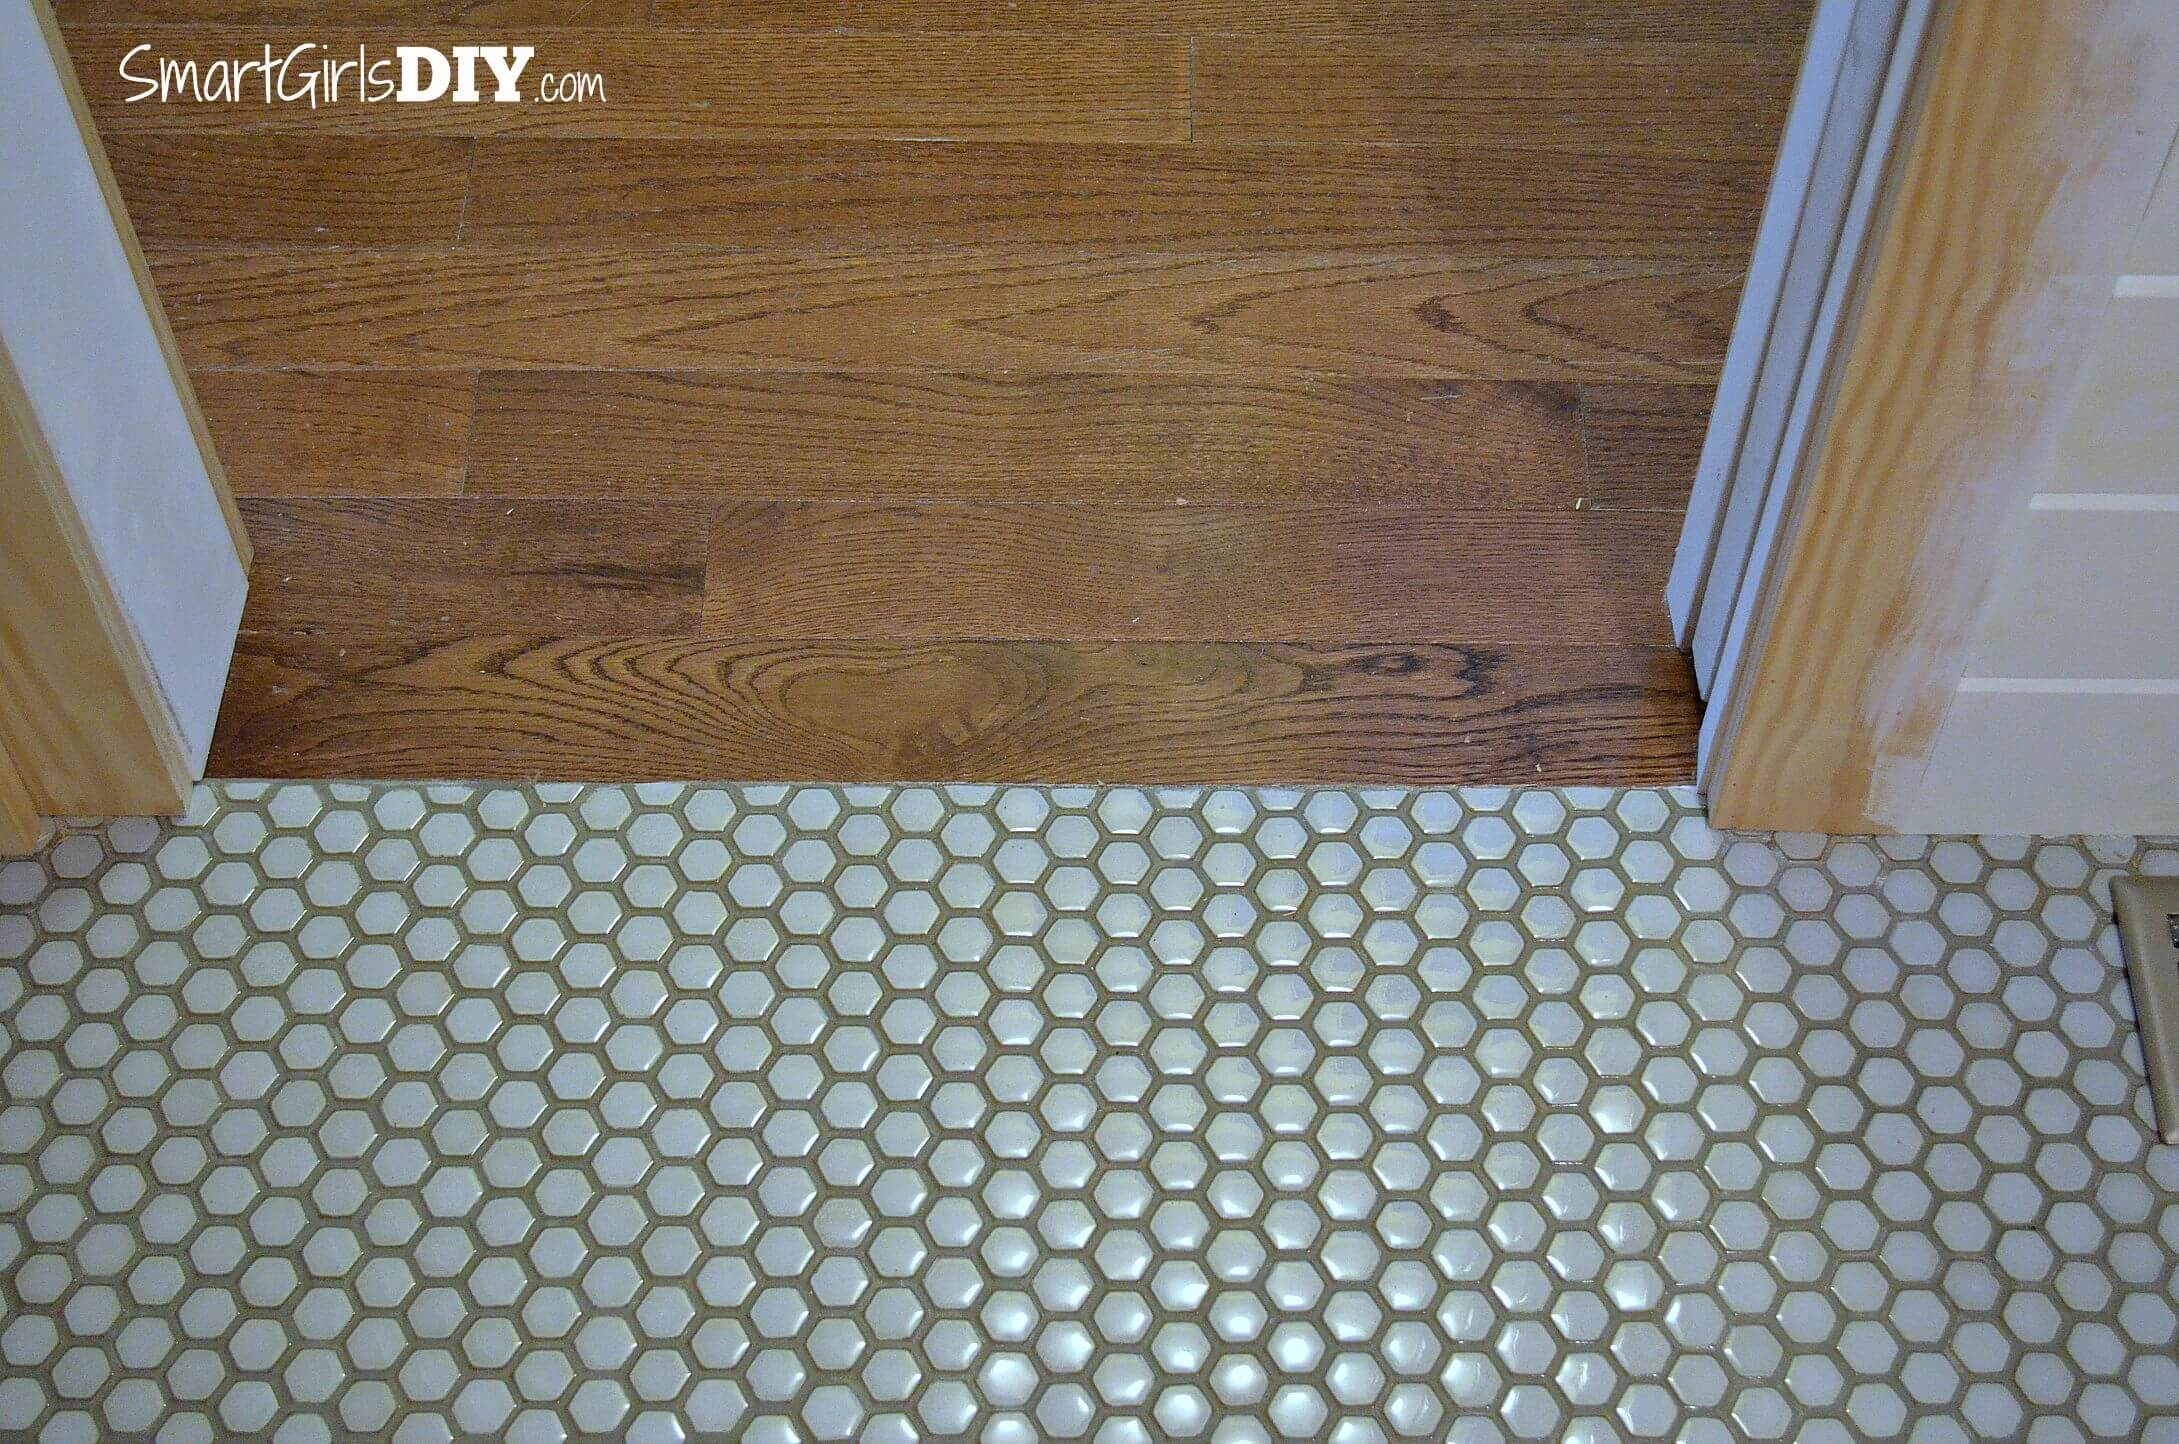 Guest bathroom 7 diy hex tile floor for Hard floor tiles